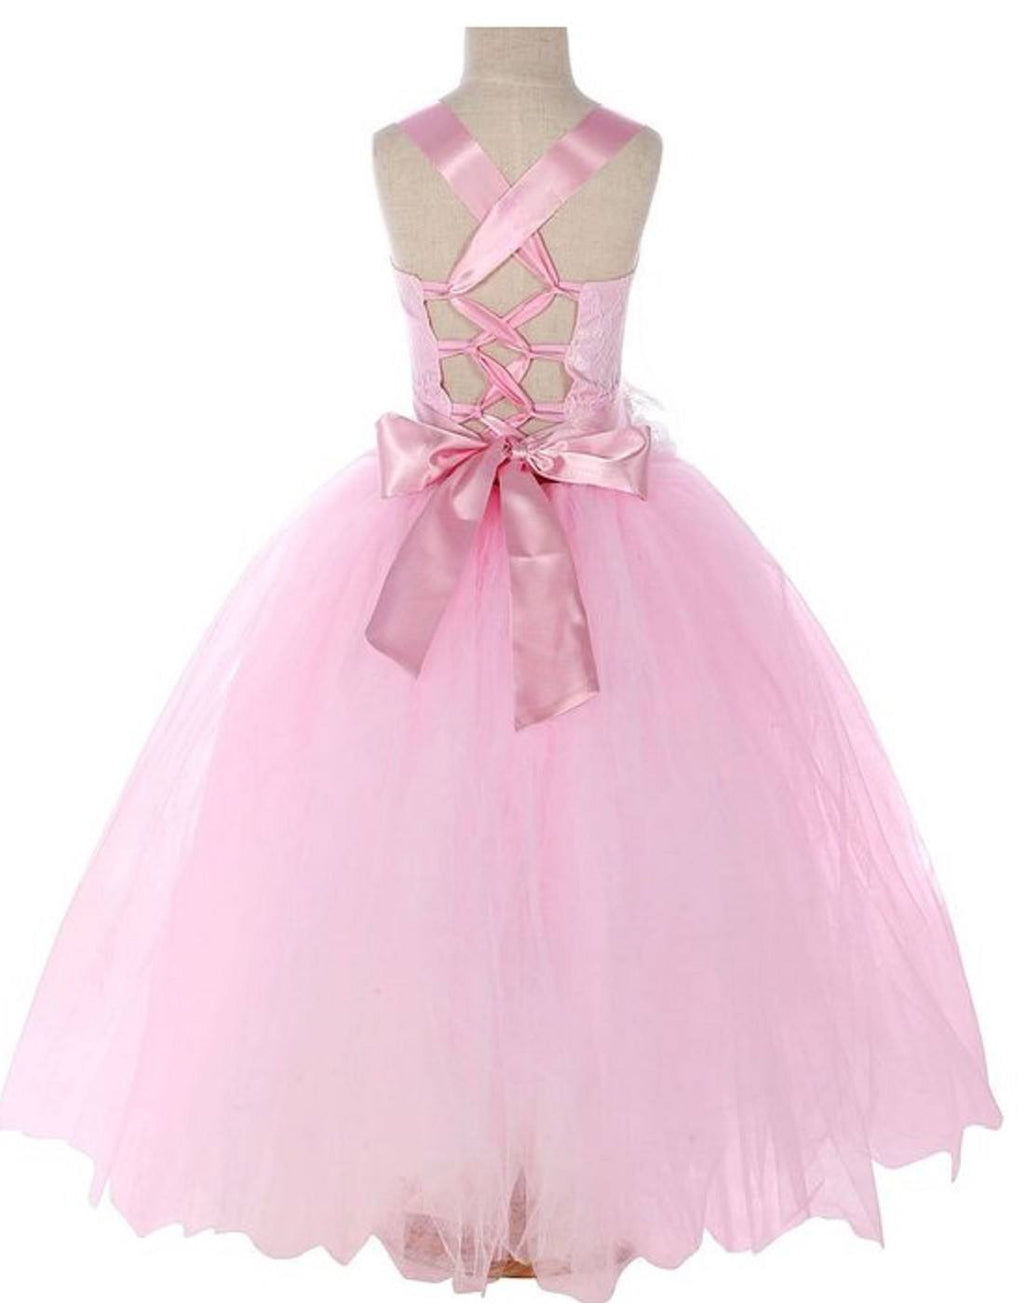 Fairy Tutu Flower Girl Dress Pink